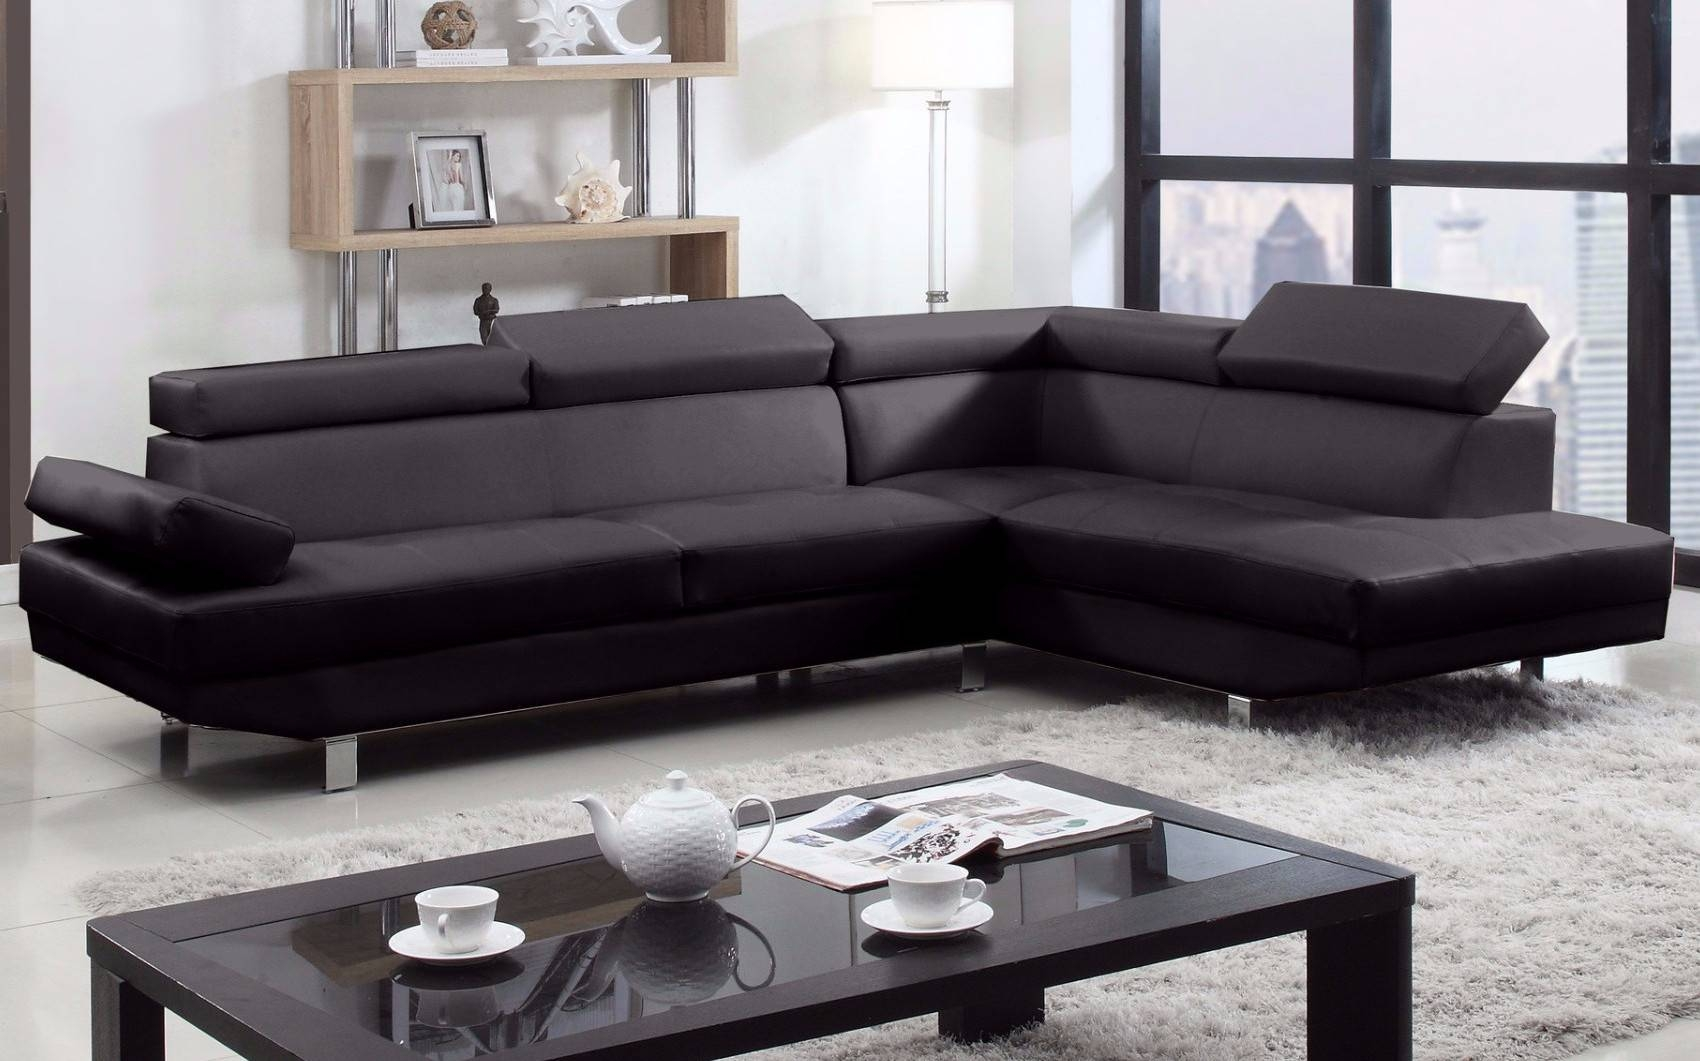 2 Piece Modern Bonded Leather Right Facing Chaise Sectional Sofa Throughout Black Leather Chaise Sofas (View 2 of 15)